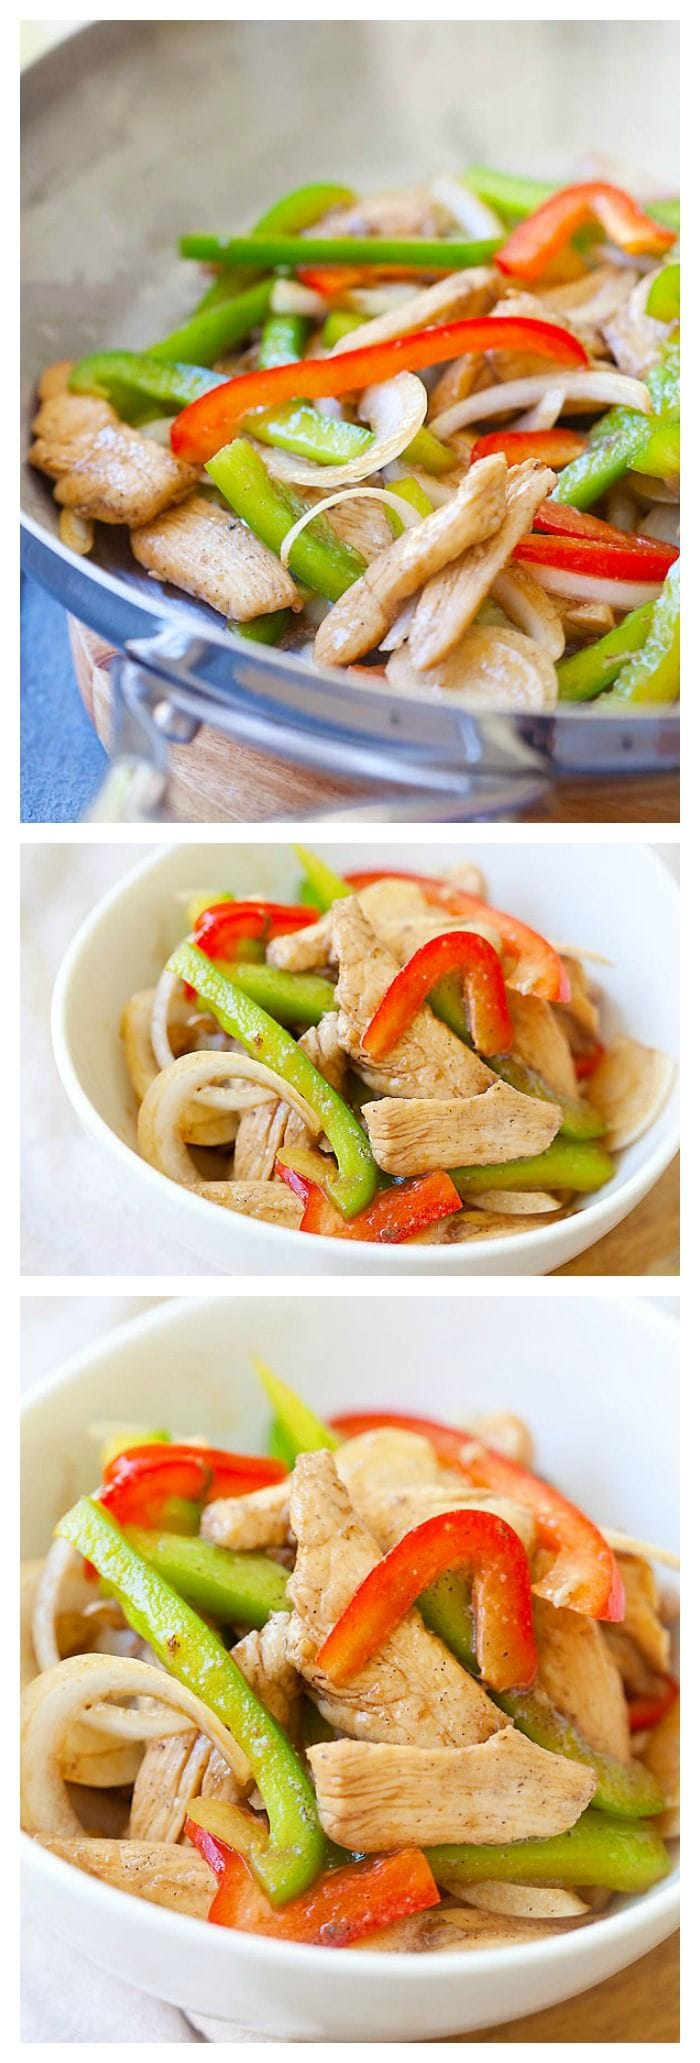 Black pepper chicken is a delicious and easy recipe to make at home, with only a few ingredients: black pepper, chicken, onion and bell pepper | rasamalaysia.com